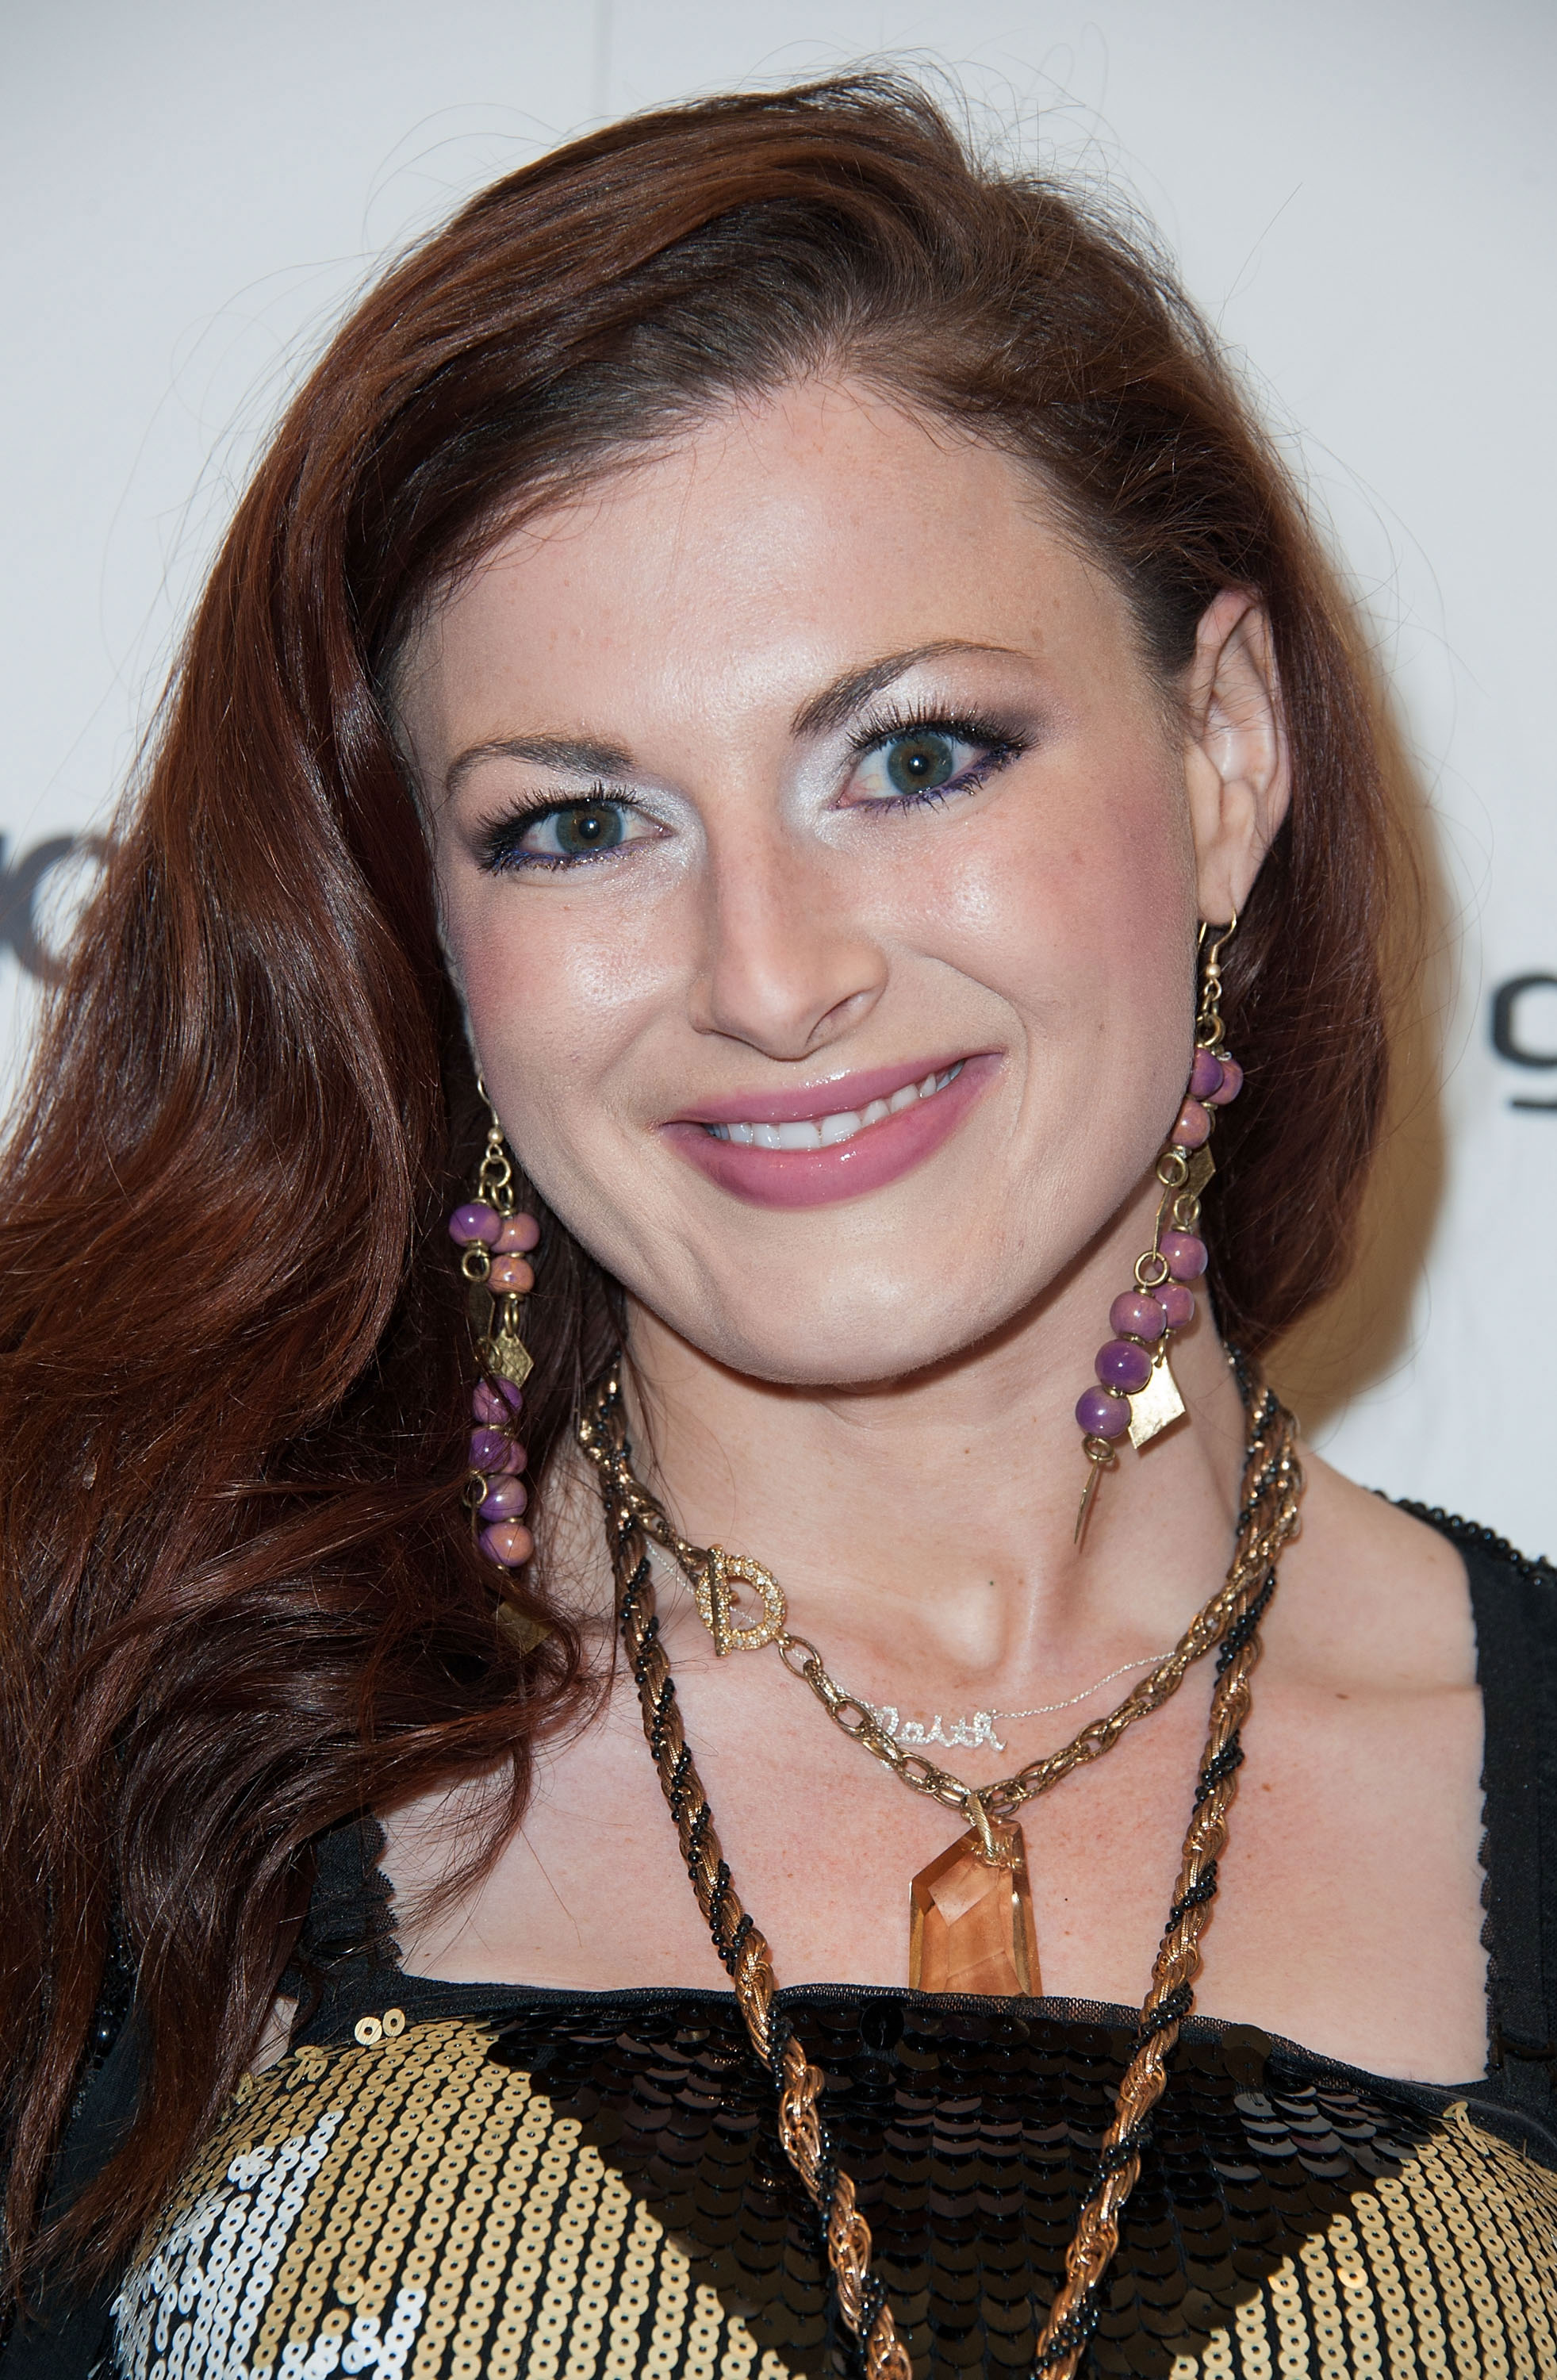 Boobs Rachel Reilly naked photo 2017